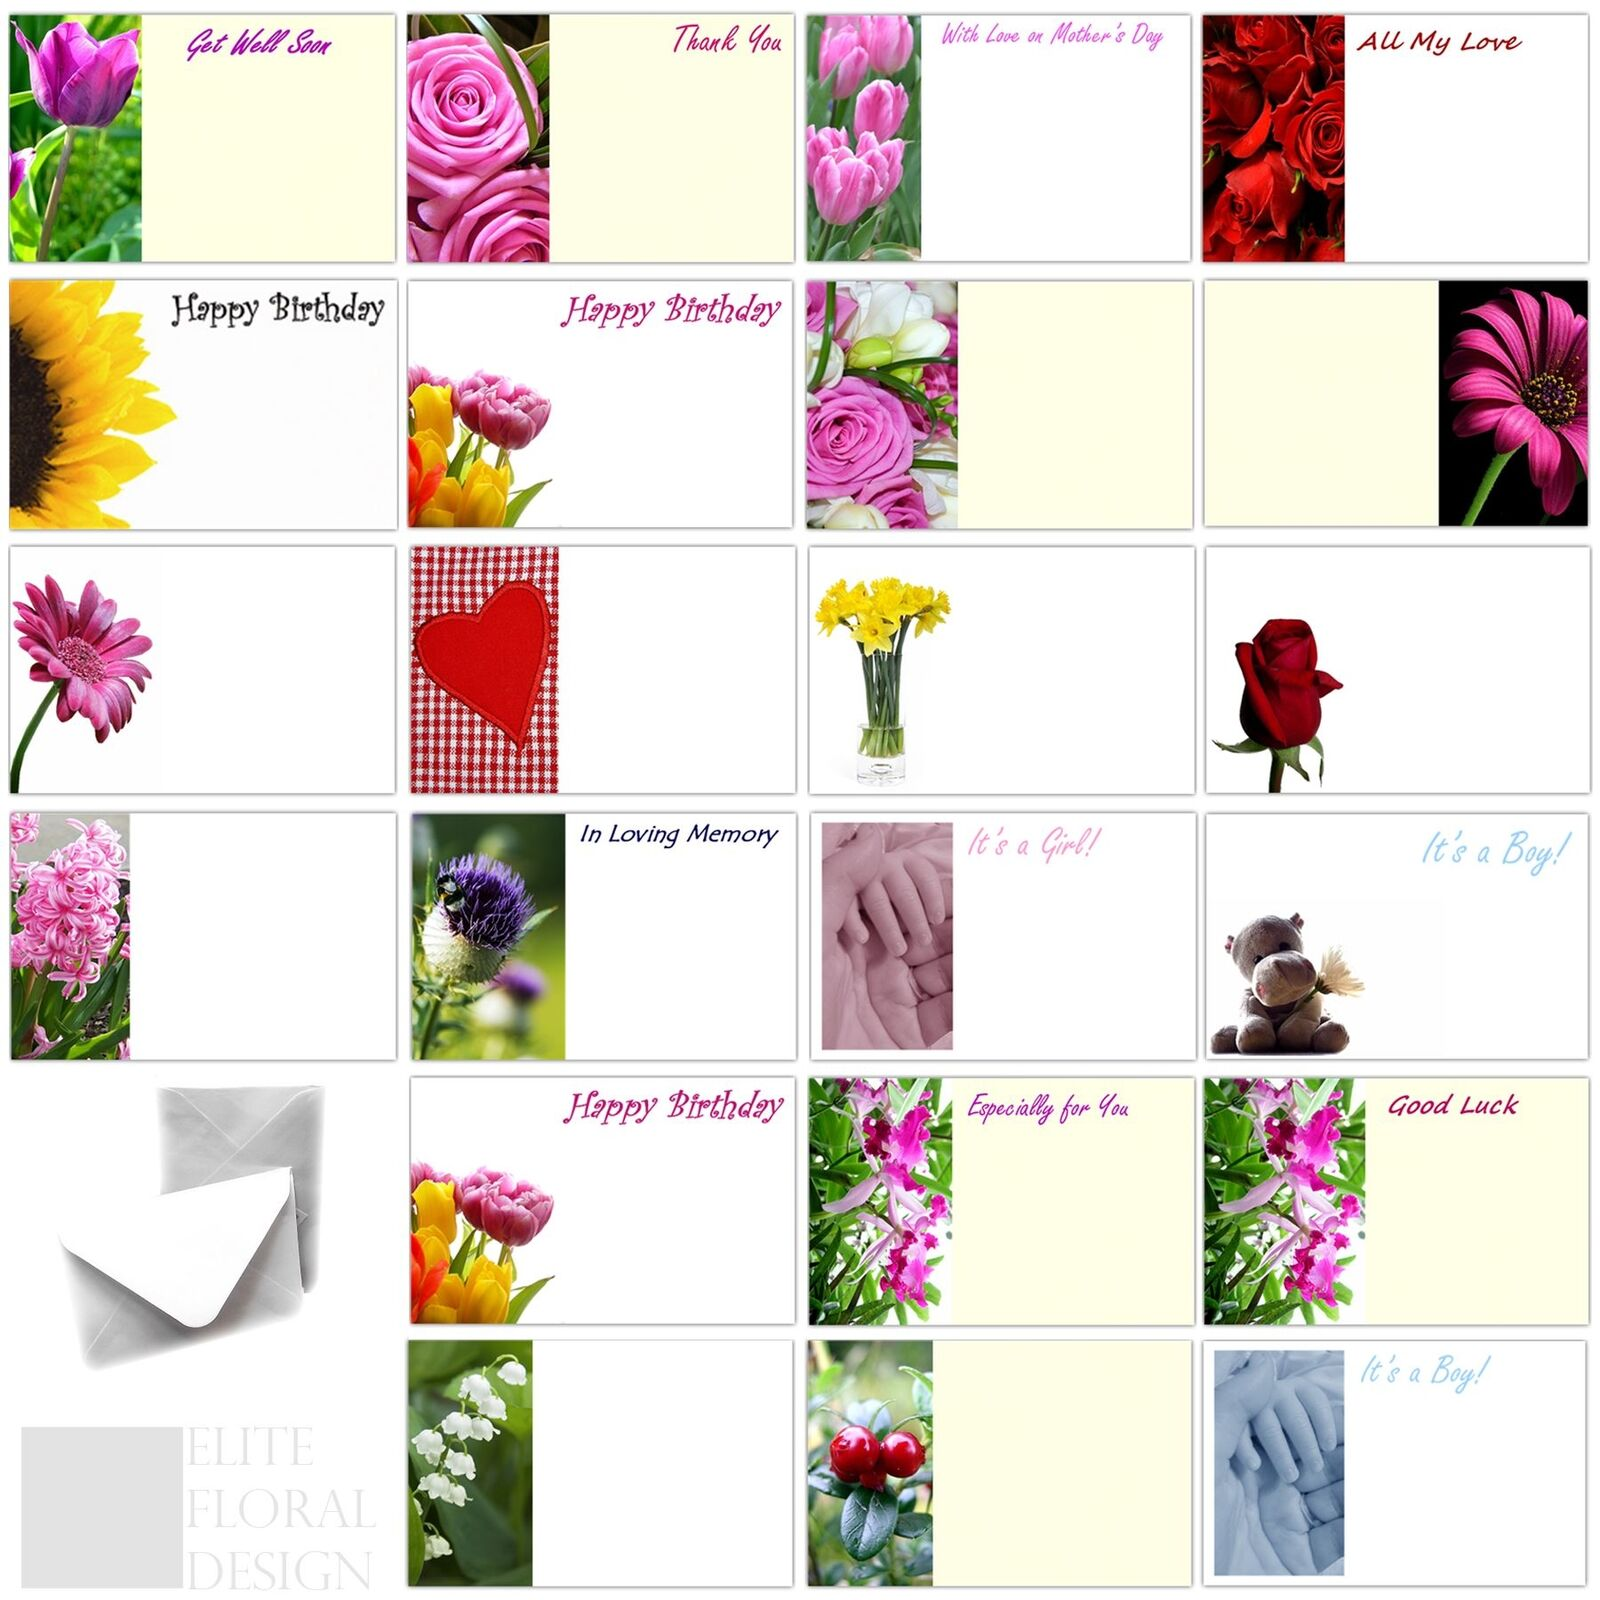 florist flower message cards birthday annivesary funeral mothers day